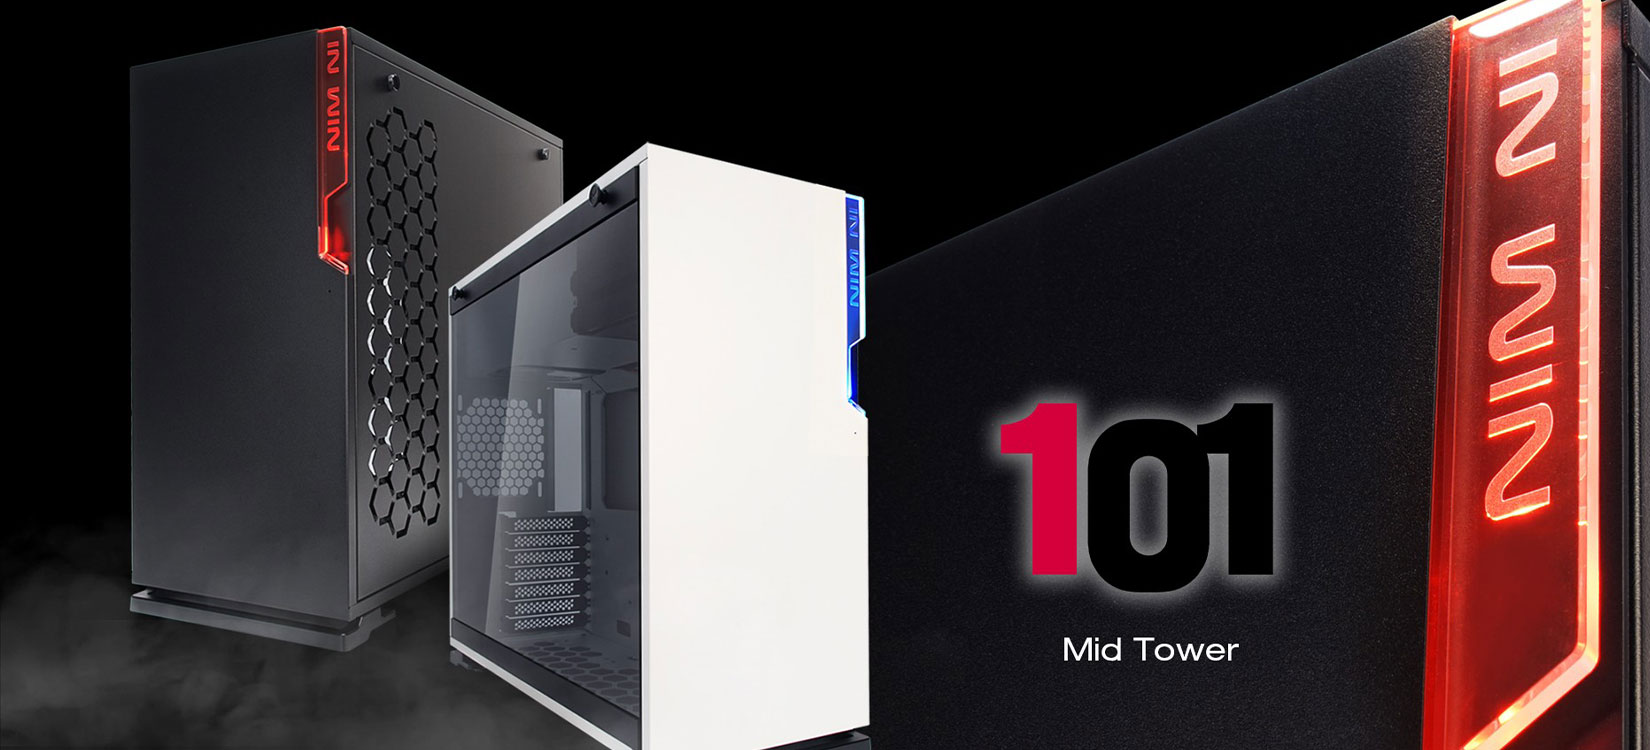 Gioi-Thieu-vo-case-inwin-101-black-full-side-tempered-glass-mid-tower-mau-den